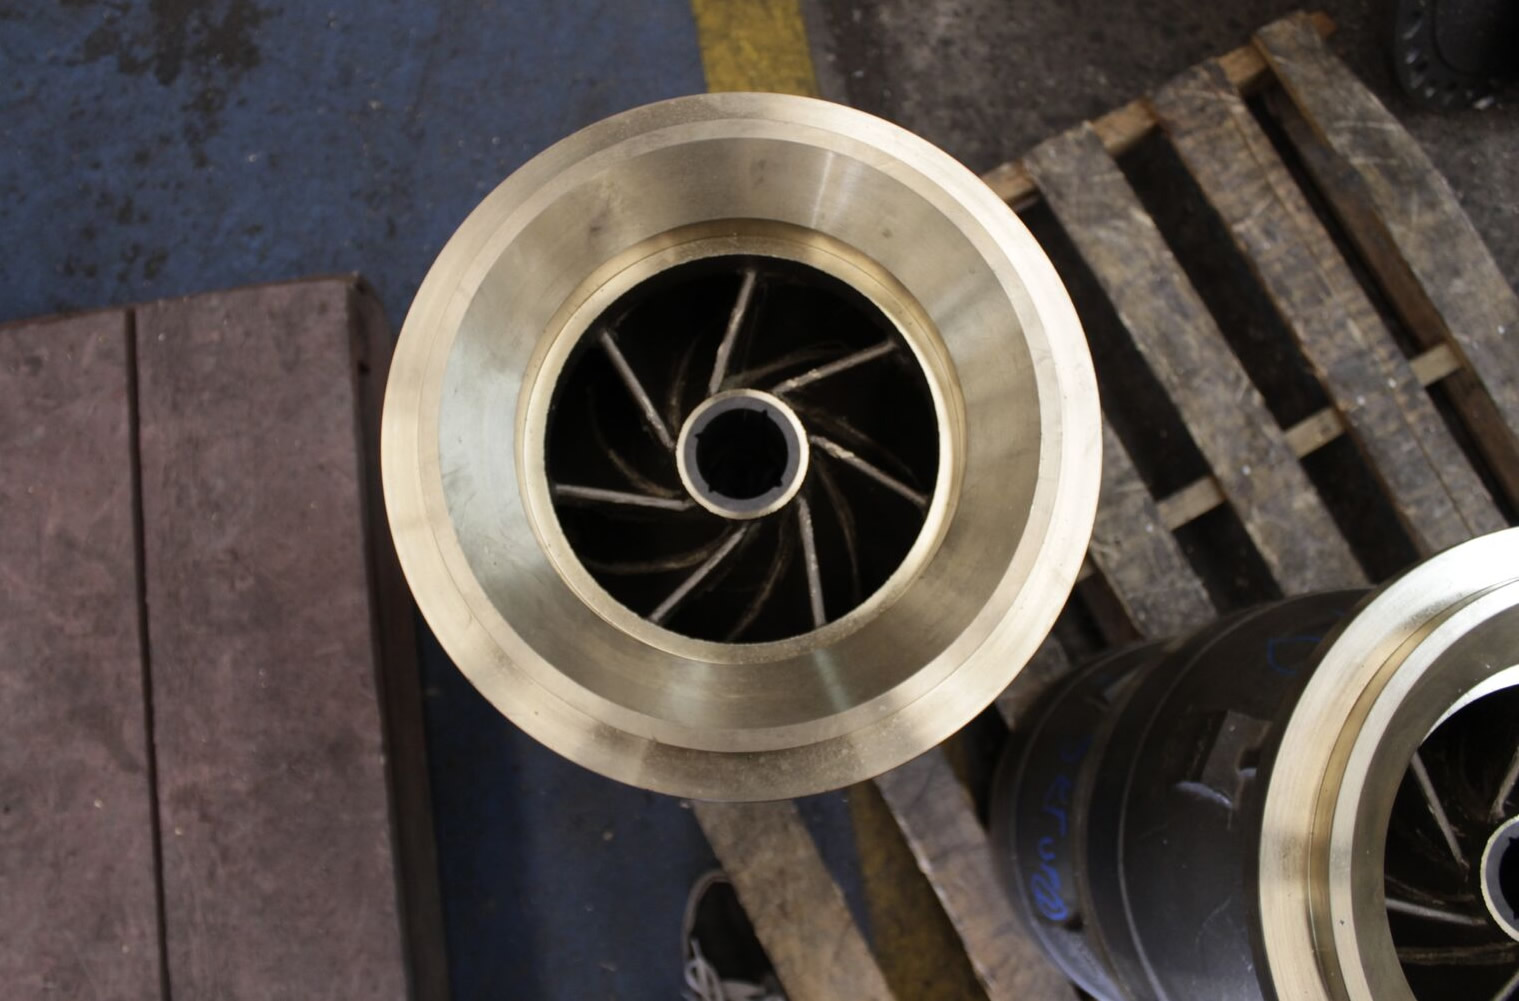 WARSON Pumps, We are MANUFACTURERS of turbine type vertical